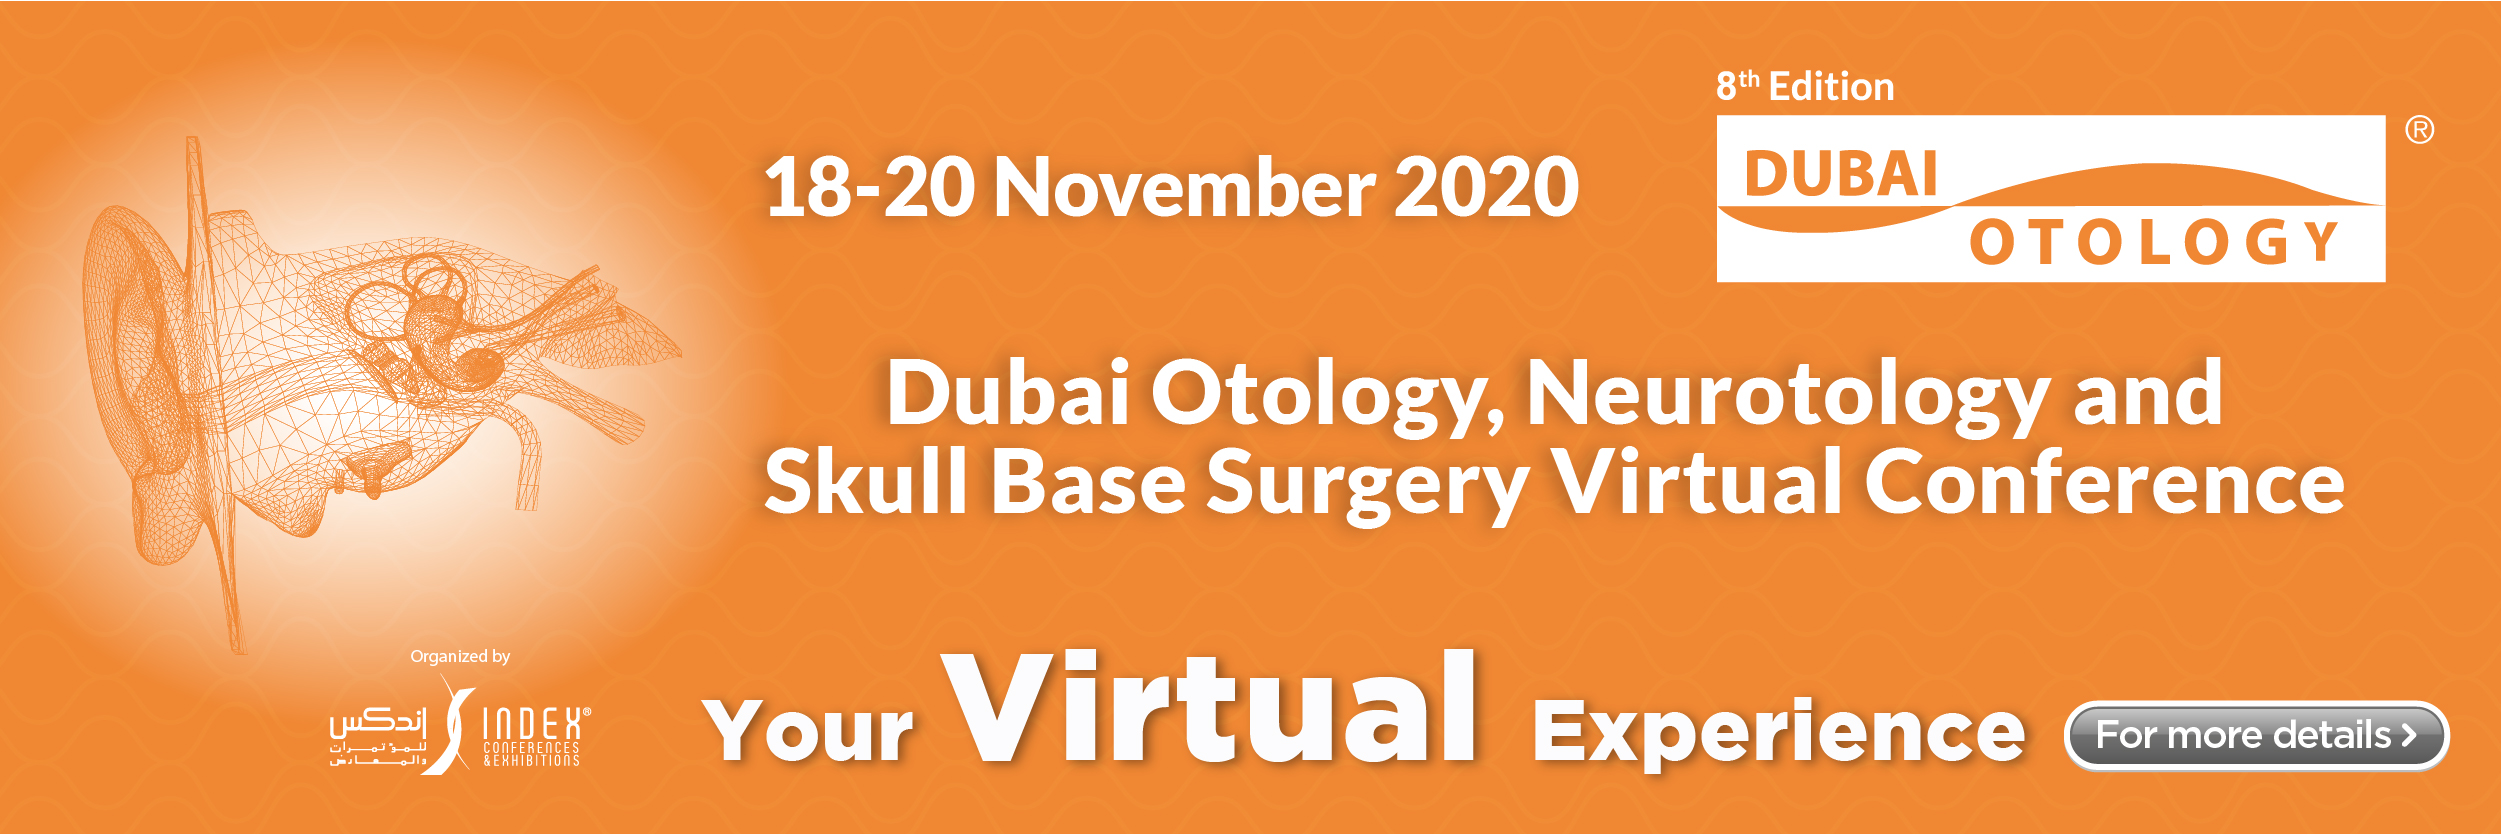 Otology Virtual Conference Web Banner